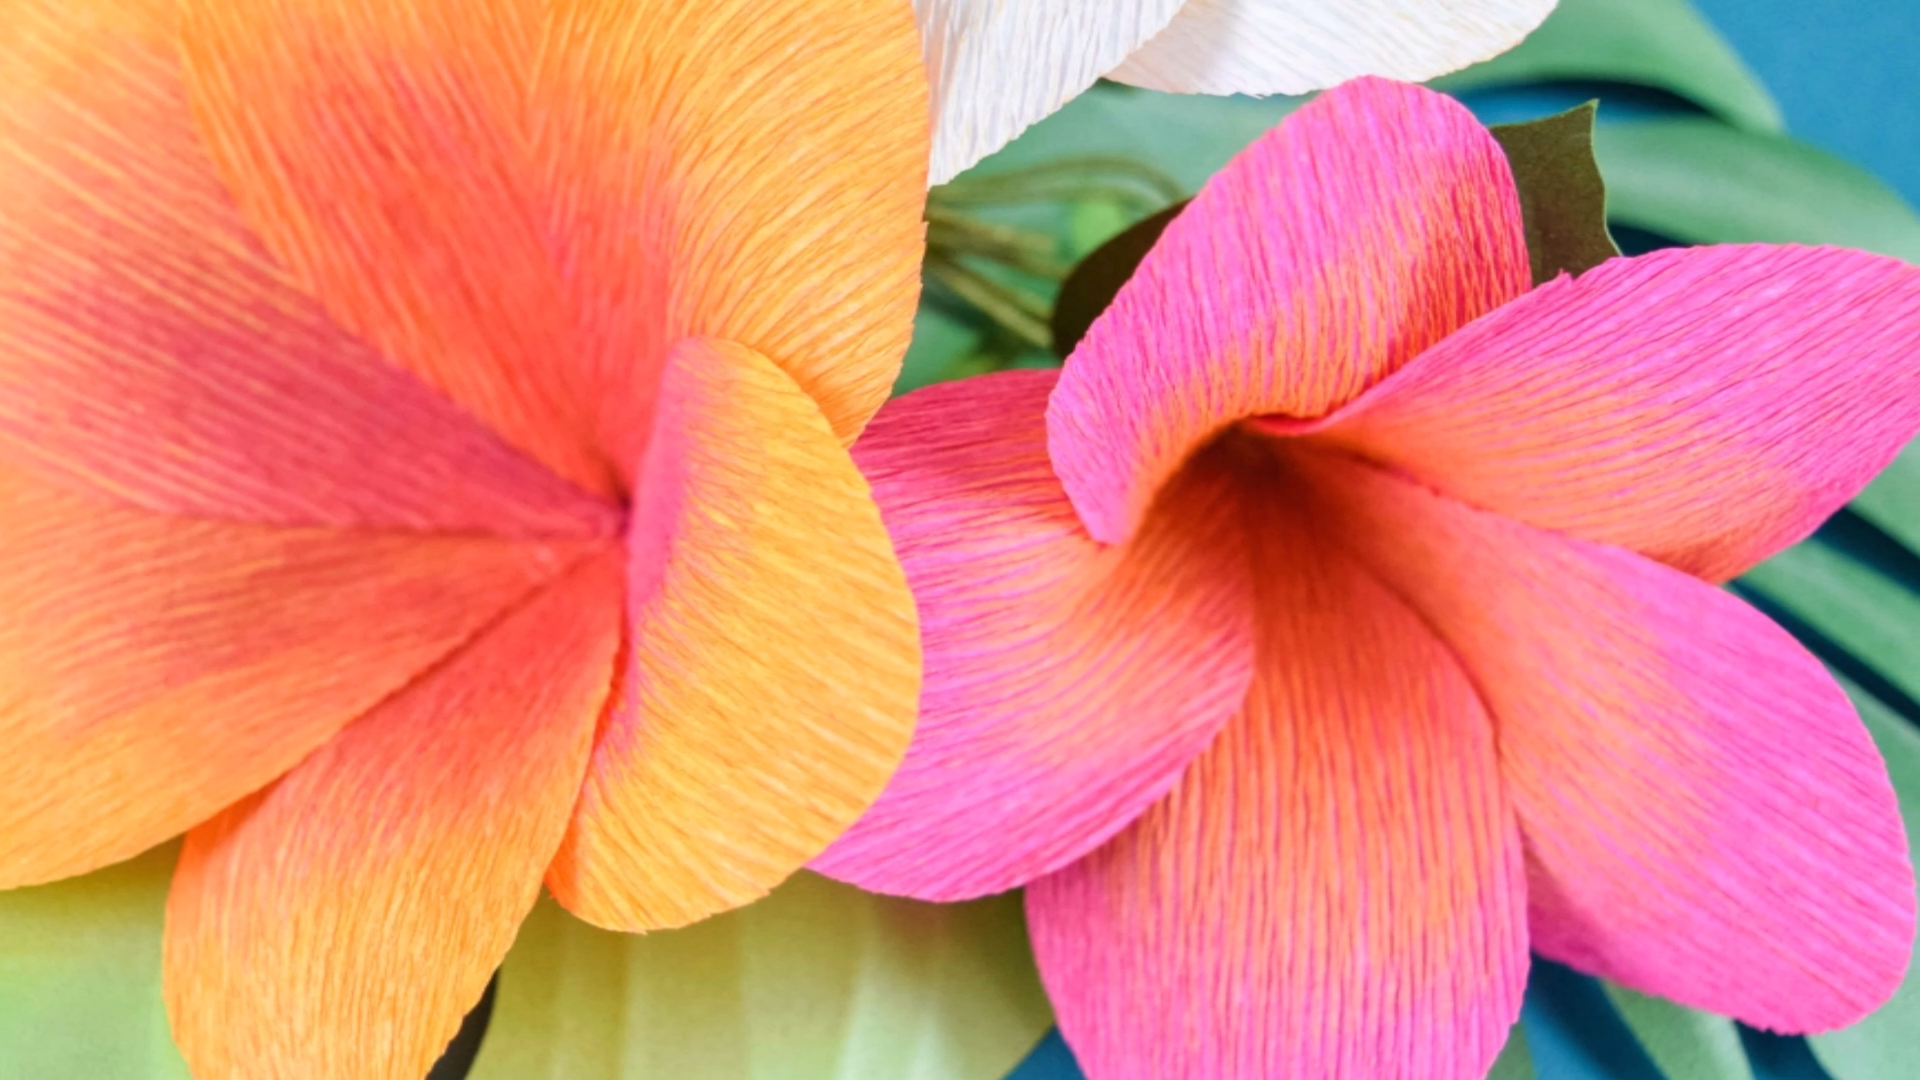 DIY Easy Plumeria Paper Flowers with FREE Flower Templates